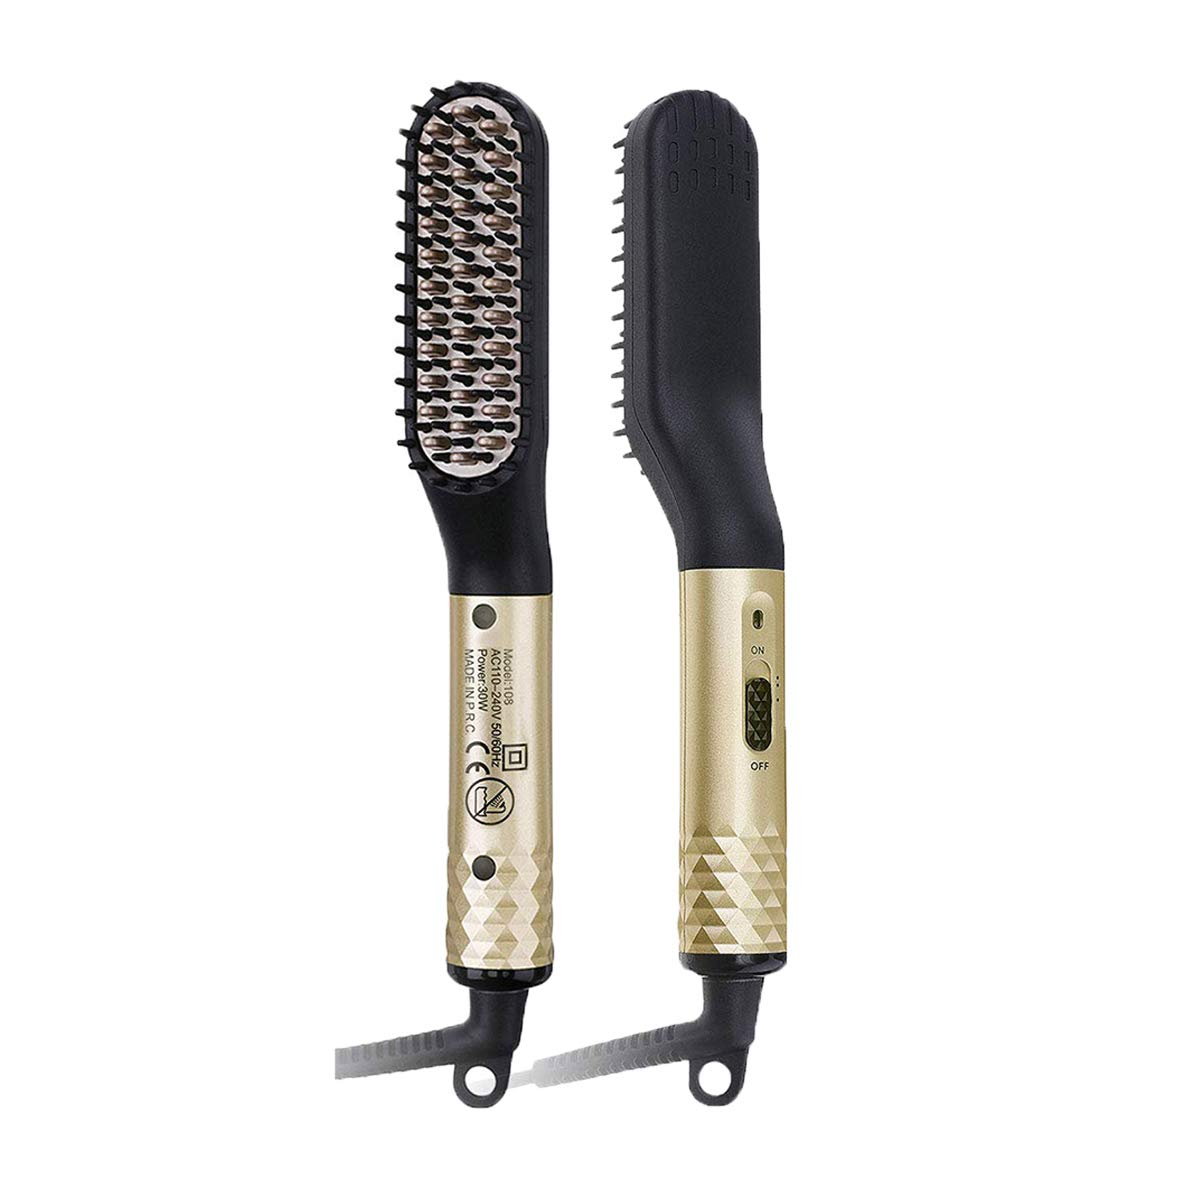 Beard Straightener for Men,Electric Beard Straightening Comb,Fast Shaping for Curly Long Beard Grooming and Hair Styling,Dual Voltage110-240V for Home Travel